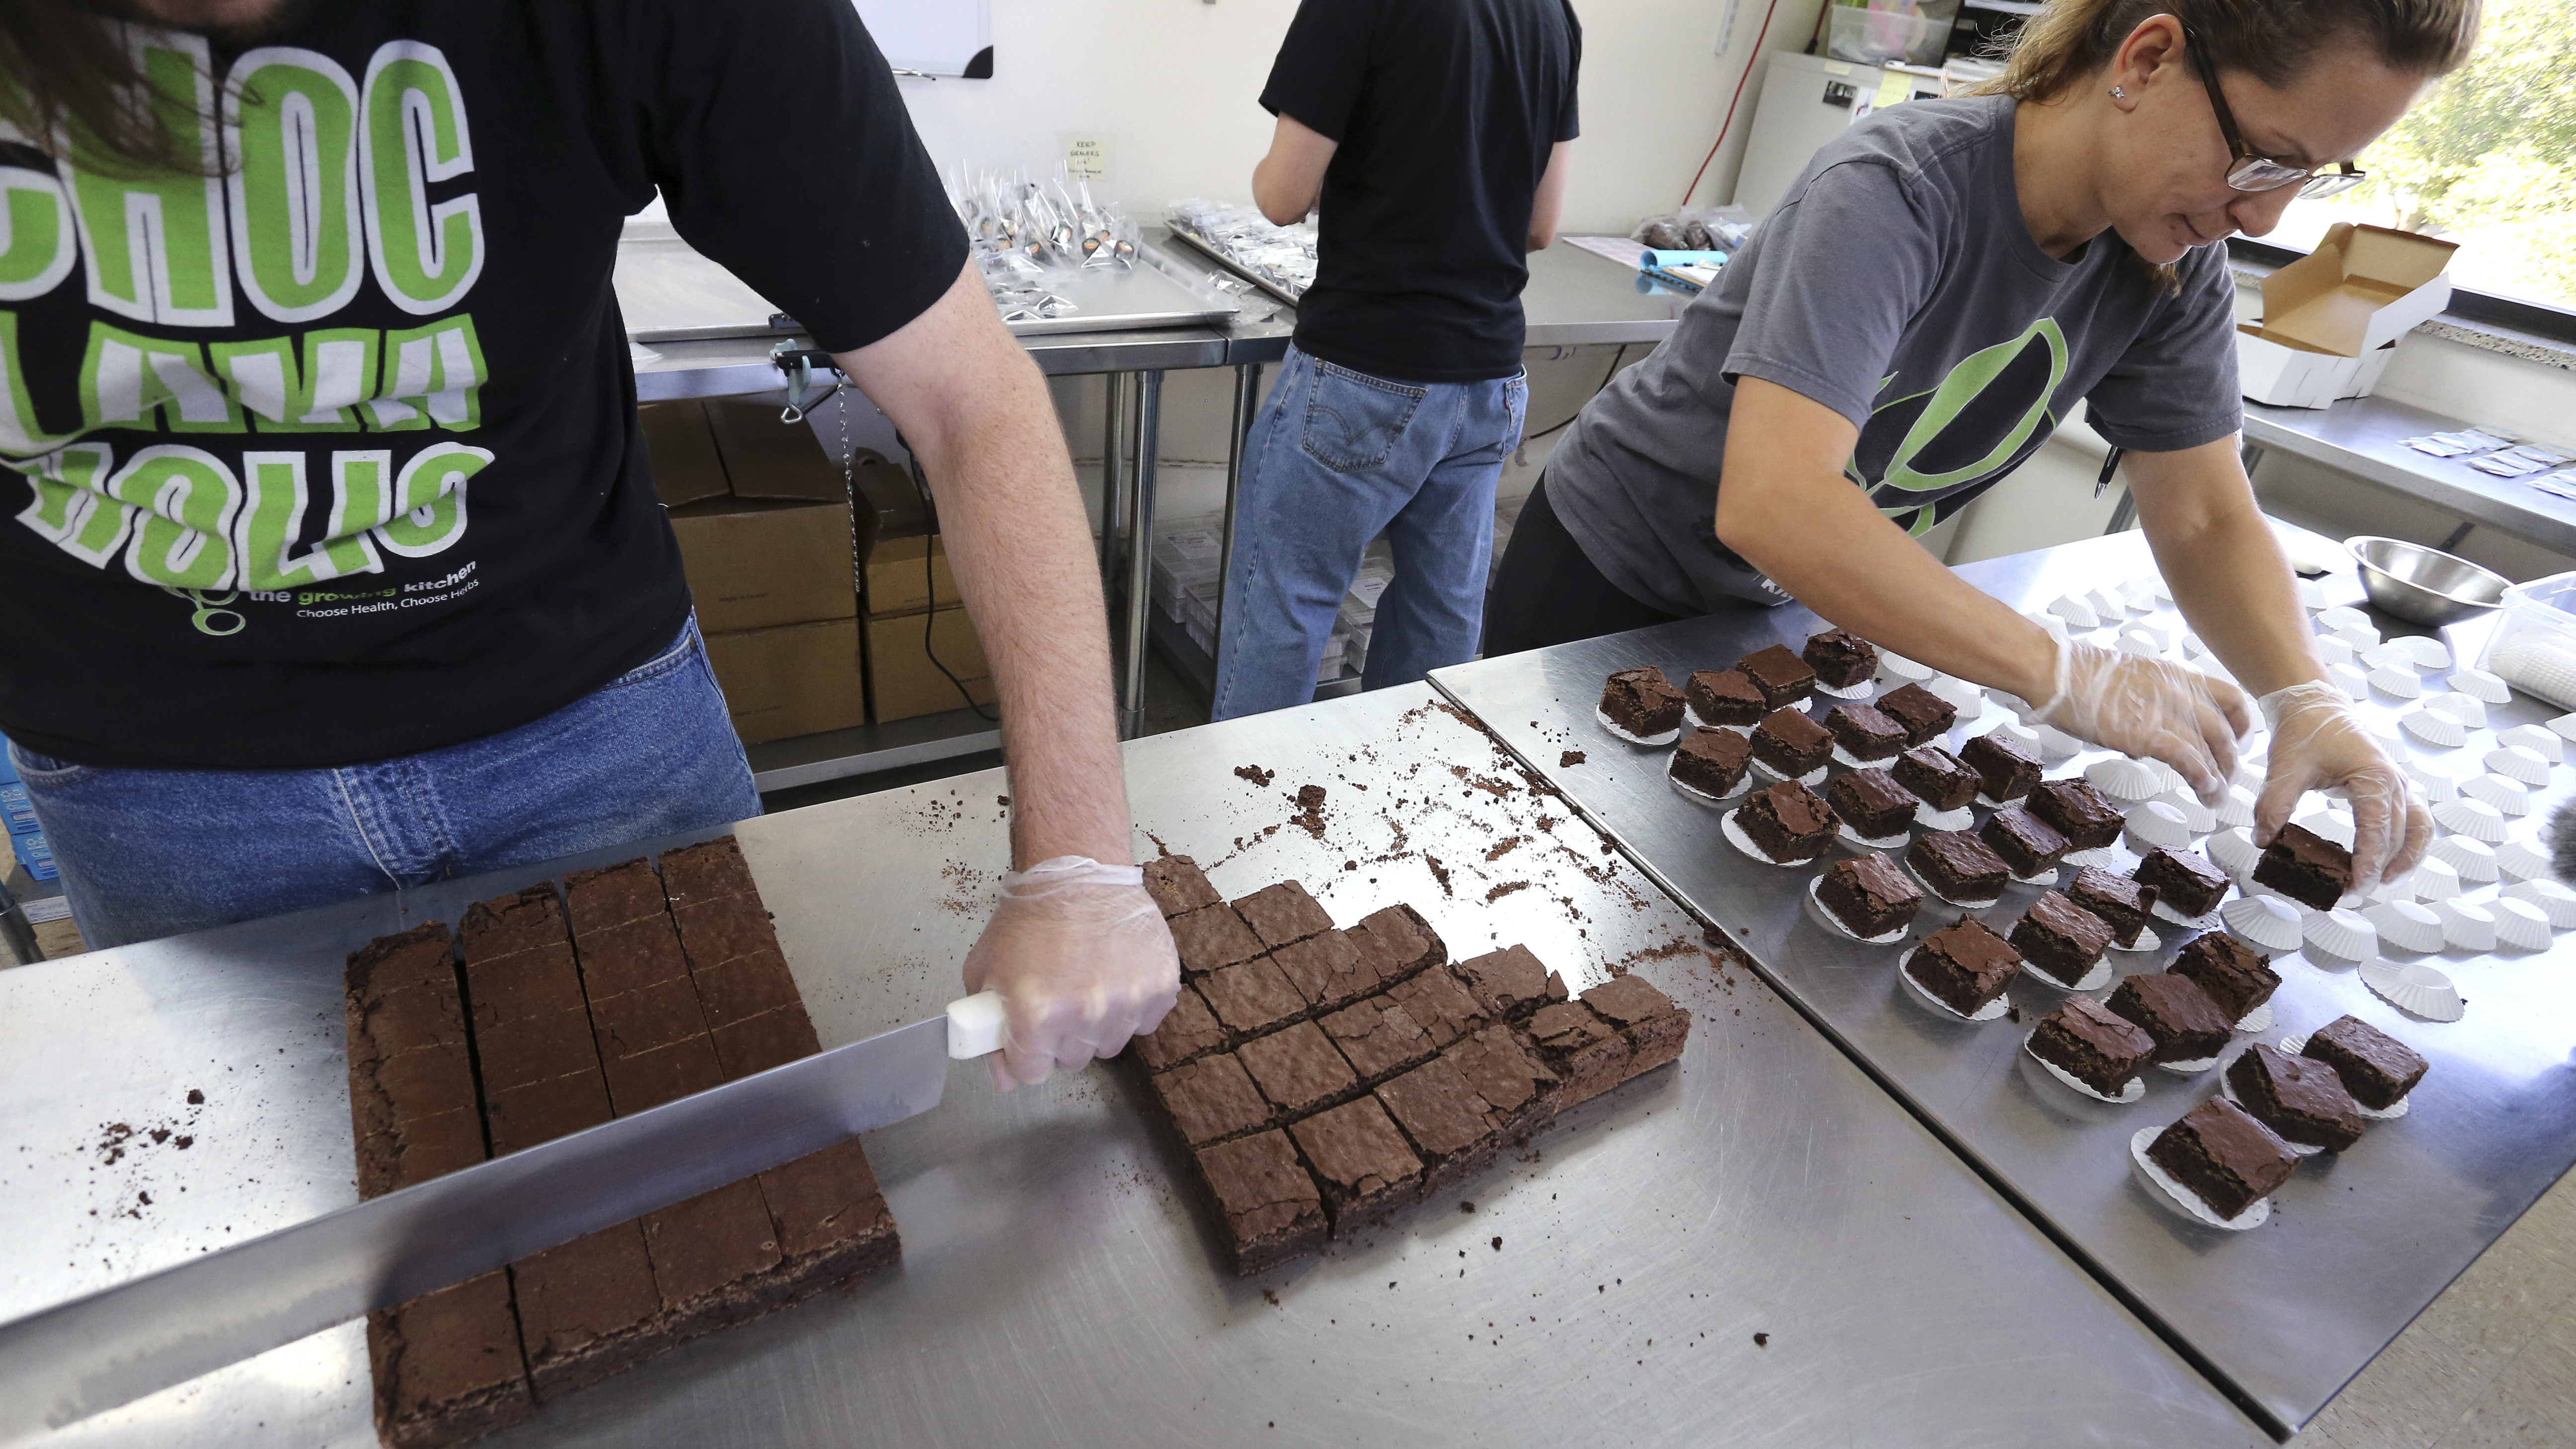 Photo: Pot brownies (AP Photo)